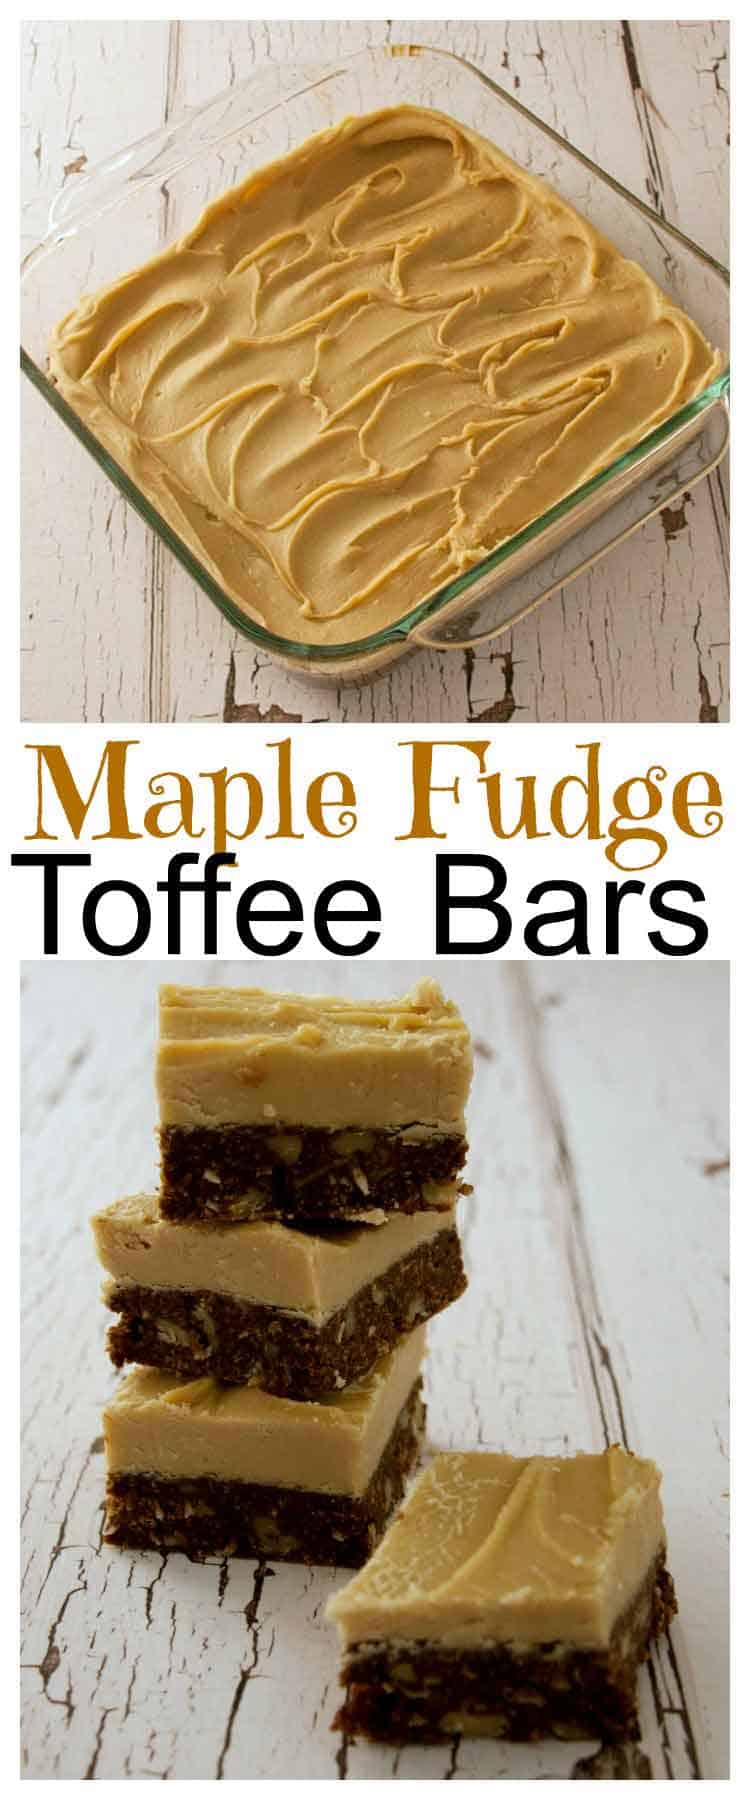 Maple Fudge Toffee Bars and Sweet Eileen's